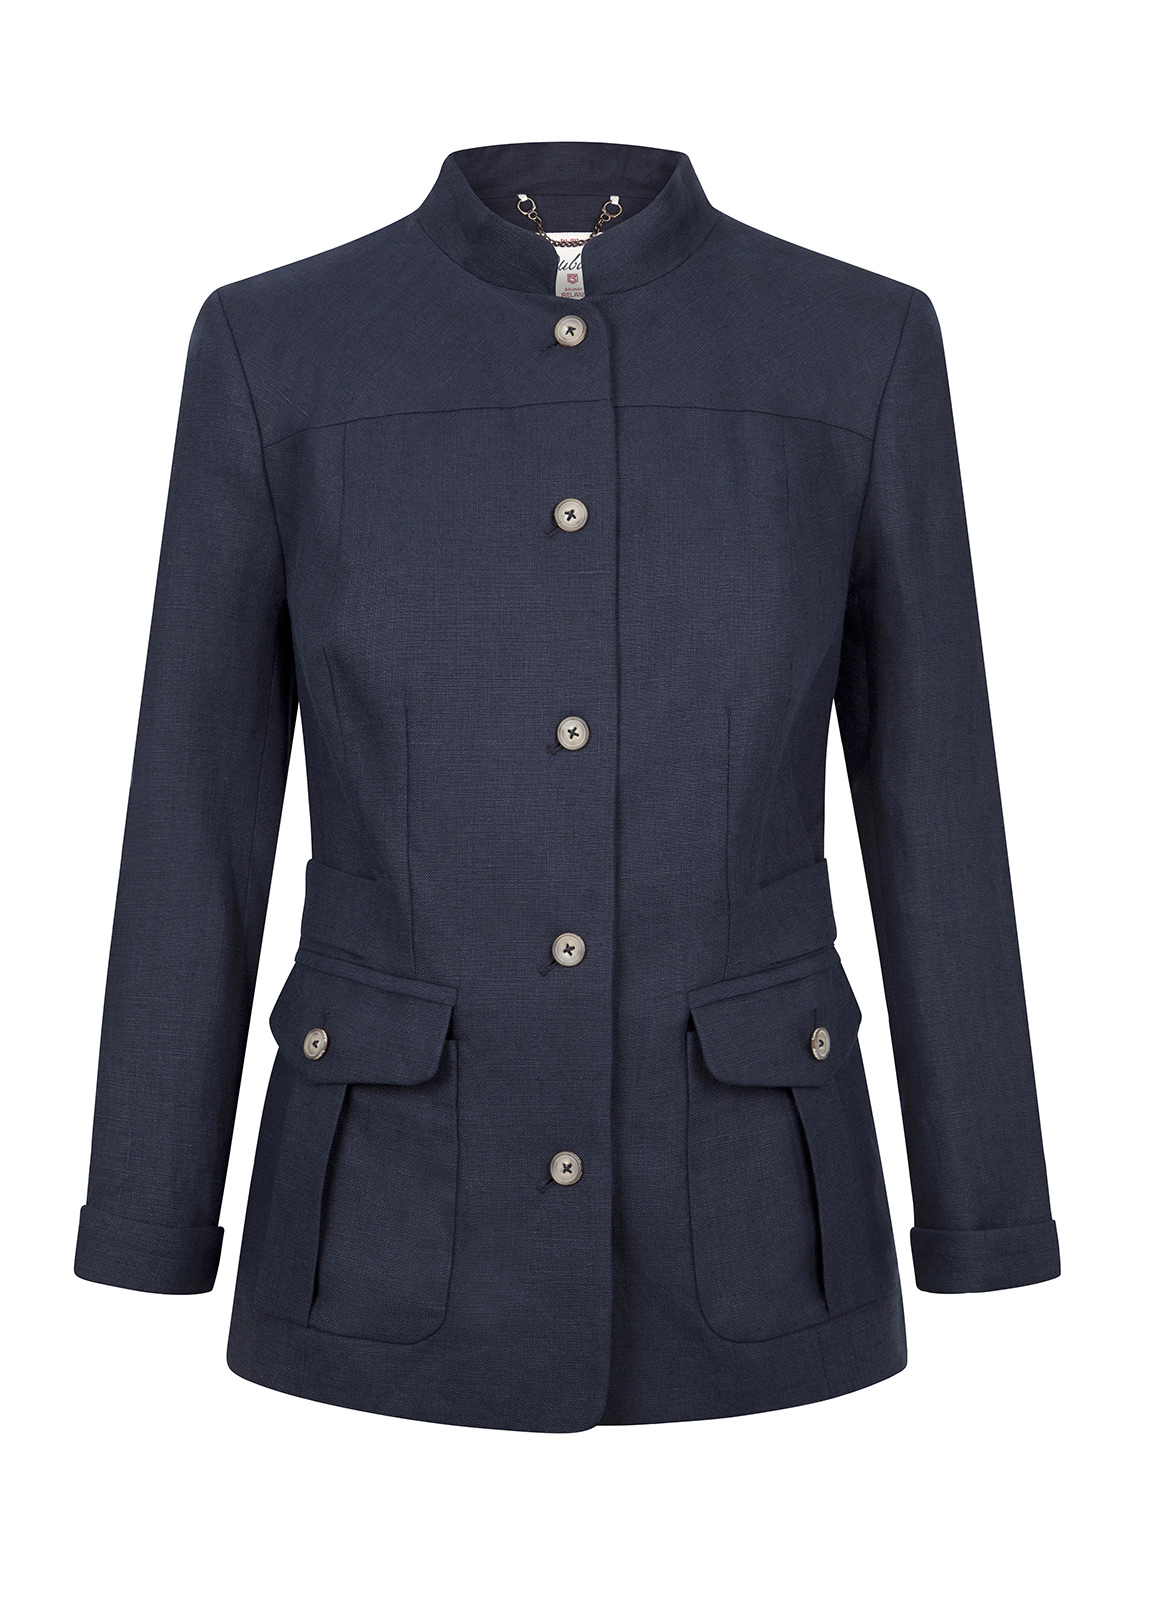 Malahide Women's Linen Jacket - Navy